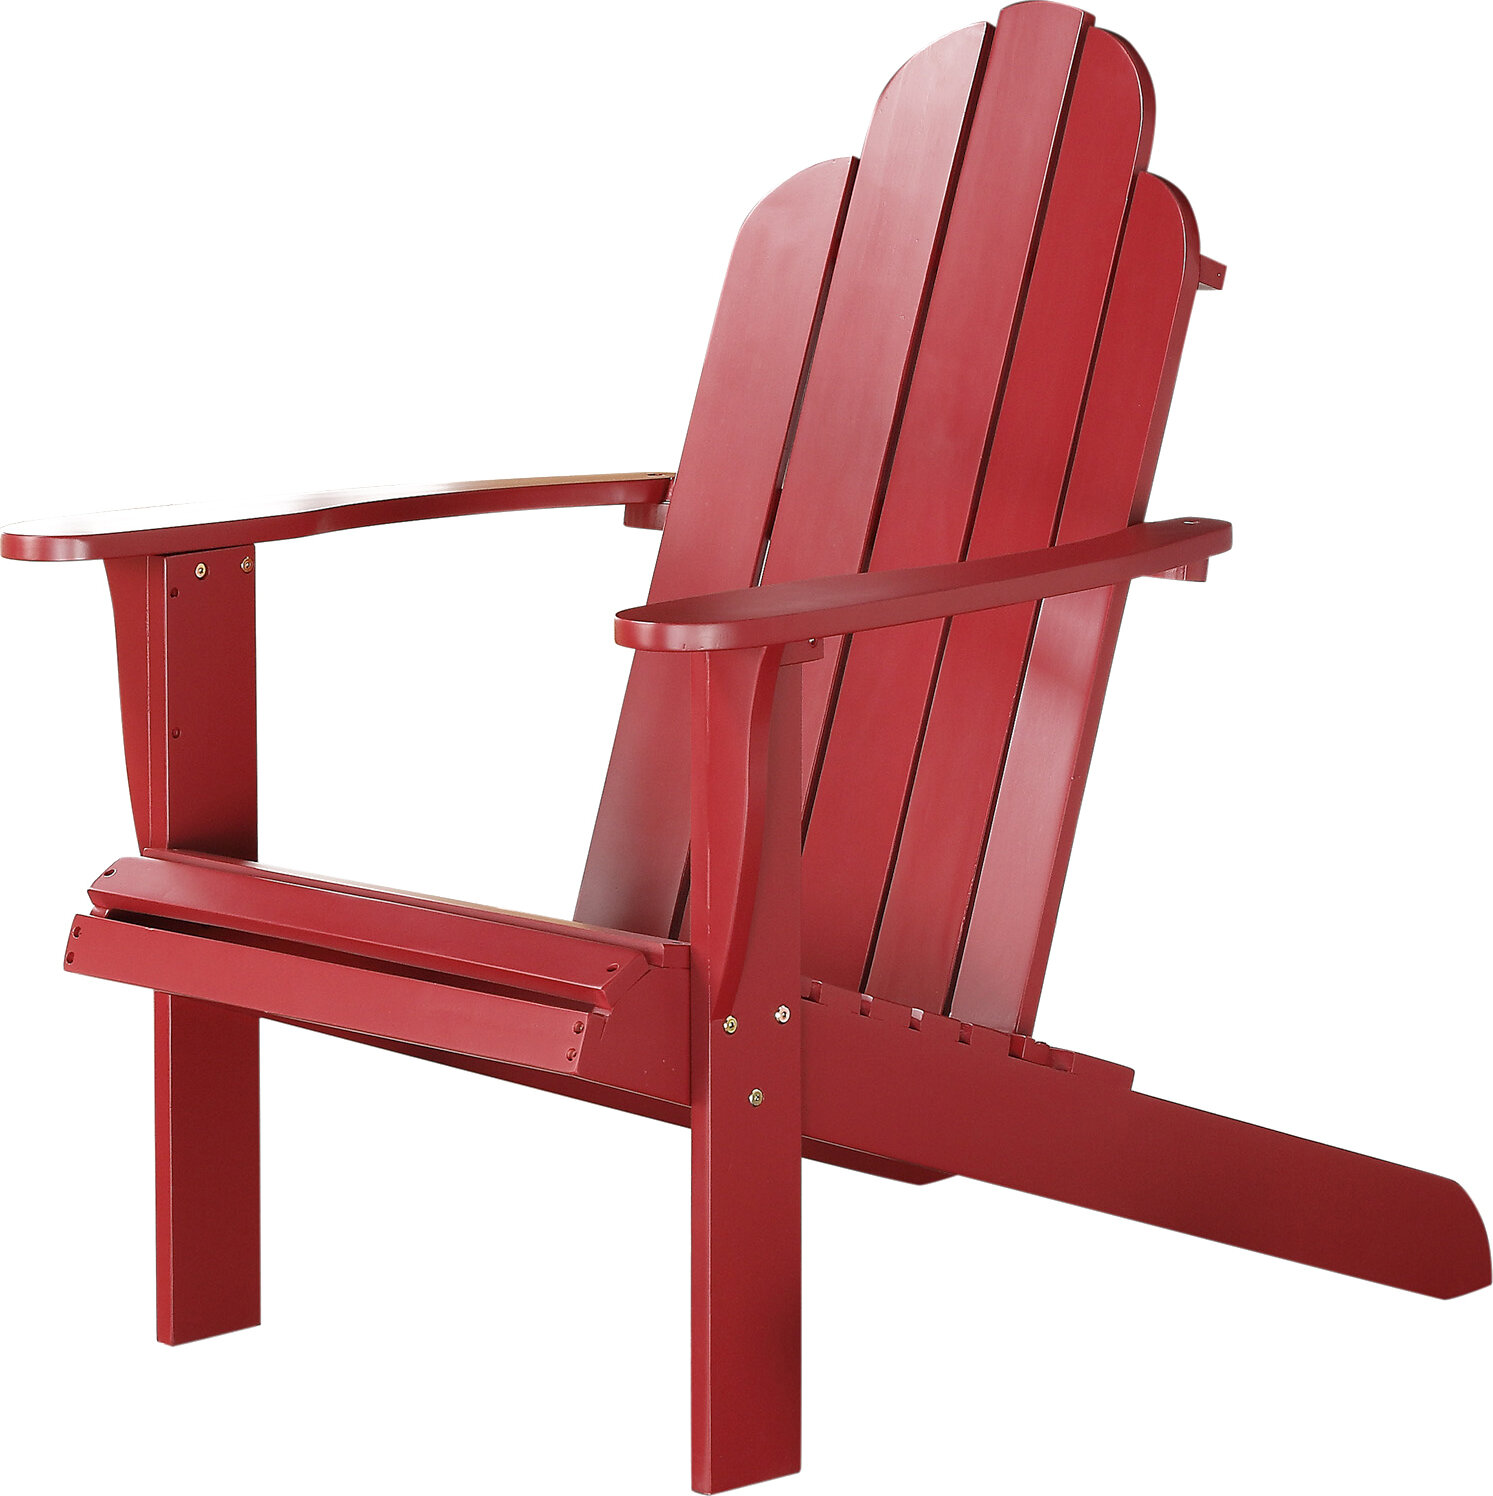 chairs pin shark wood pinterest adirondack chair